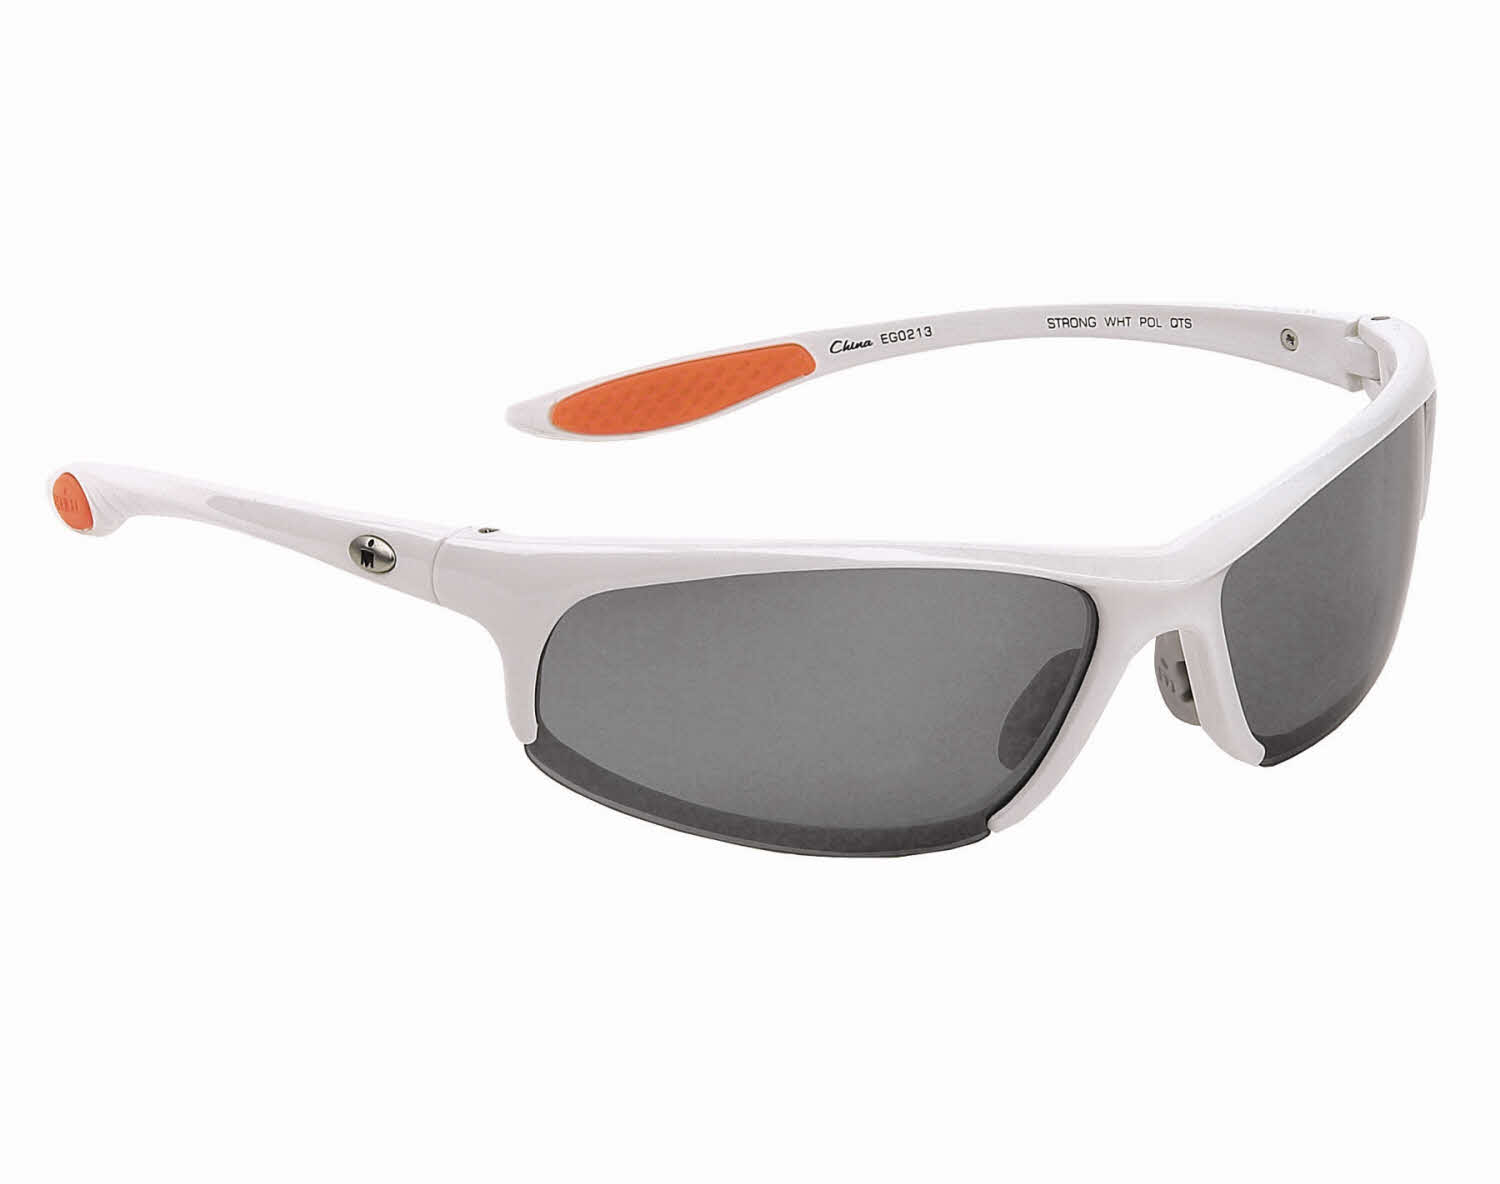 a2a7322fe34 IronMan Strong Sunglasses